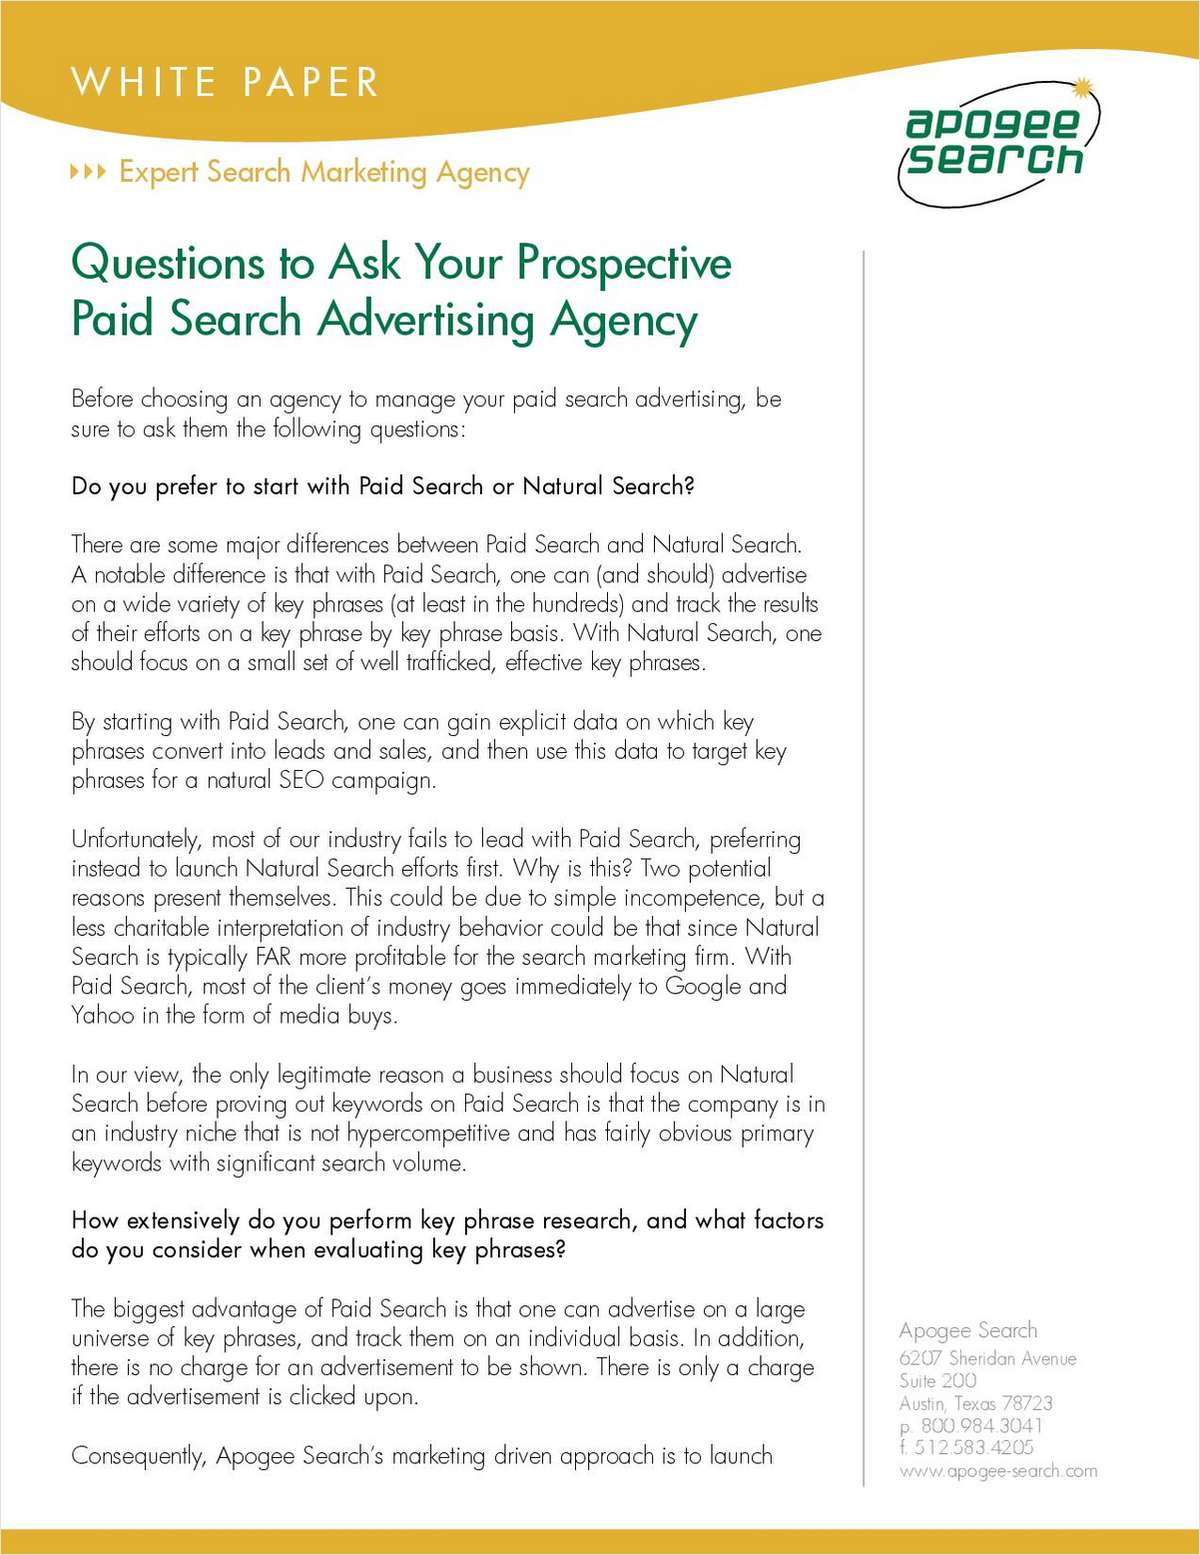 Questions to Ask Your Prospective Paid Search Advertising Agency